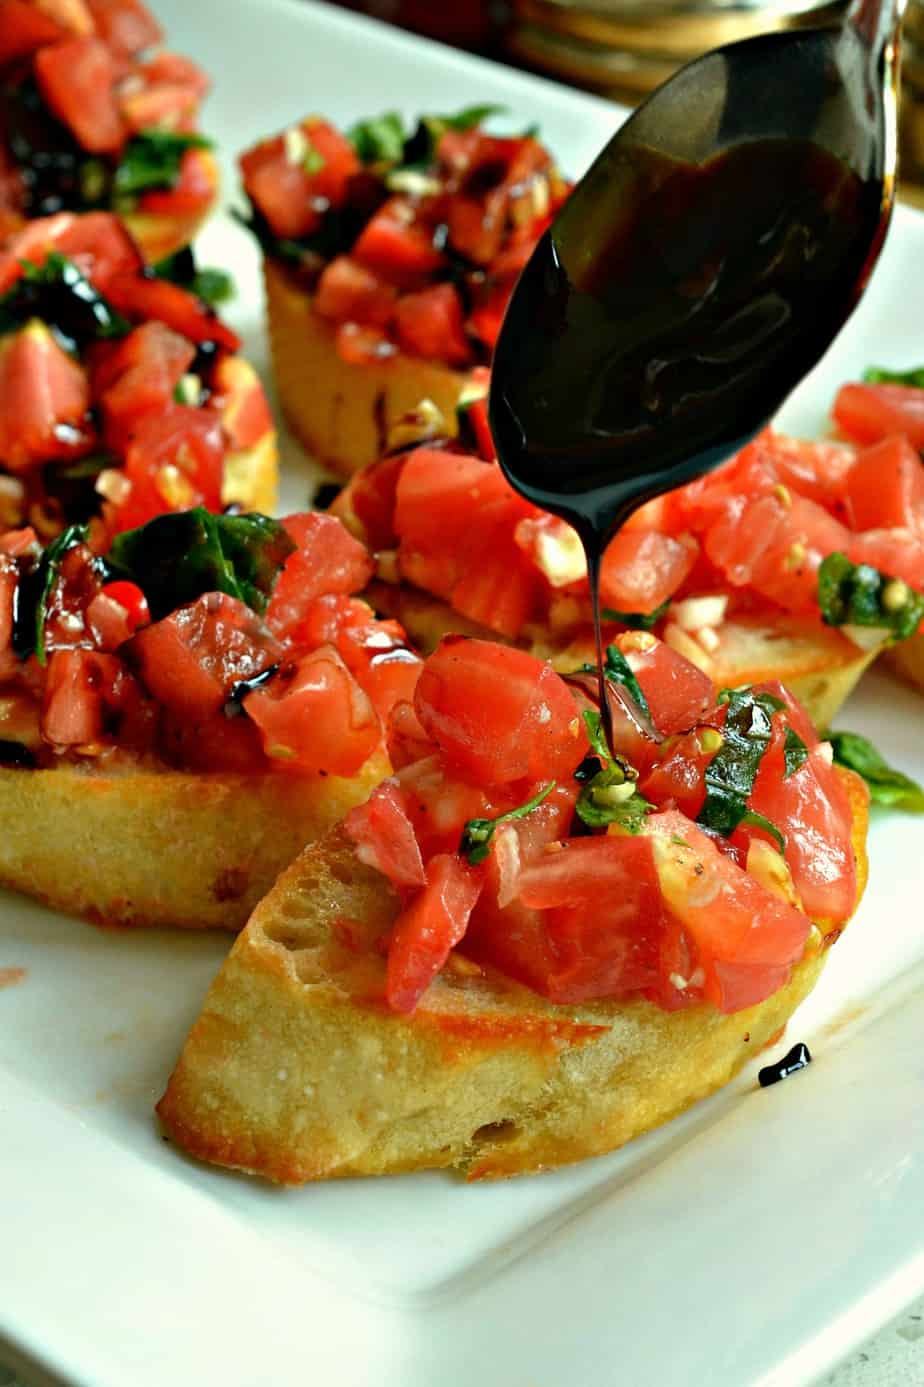 Sun ripened tomatoes, fresh basil, and sweet garlic combine in this easy Bruschetta recipe with a flavorful balsamic glaze.